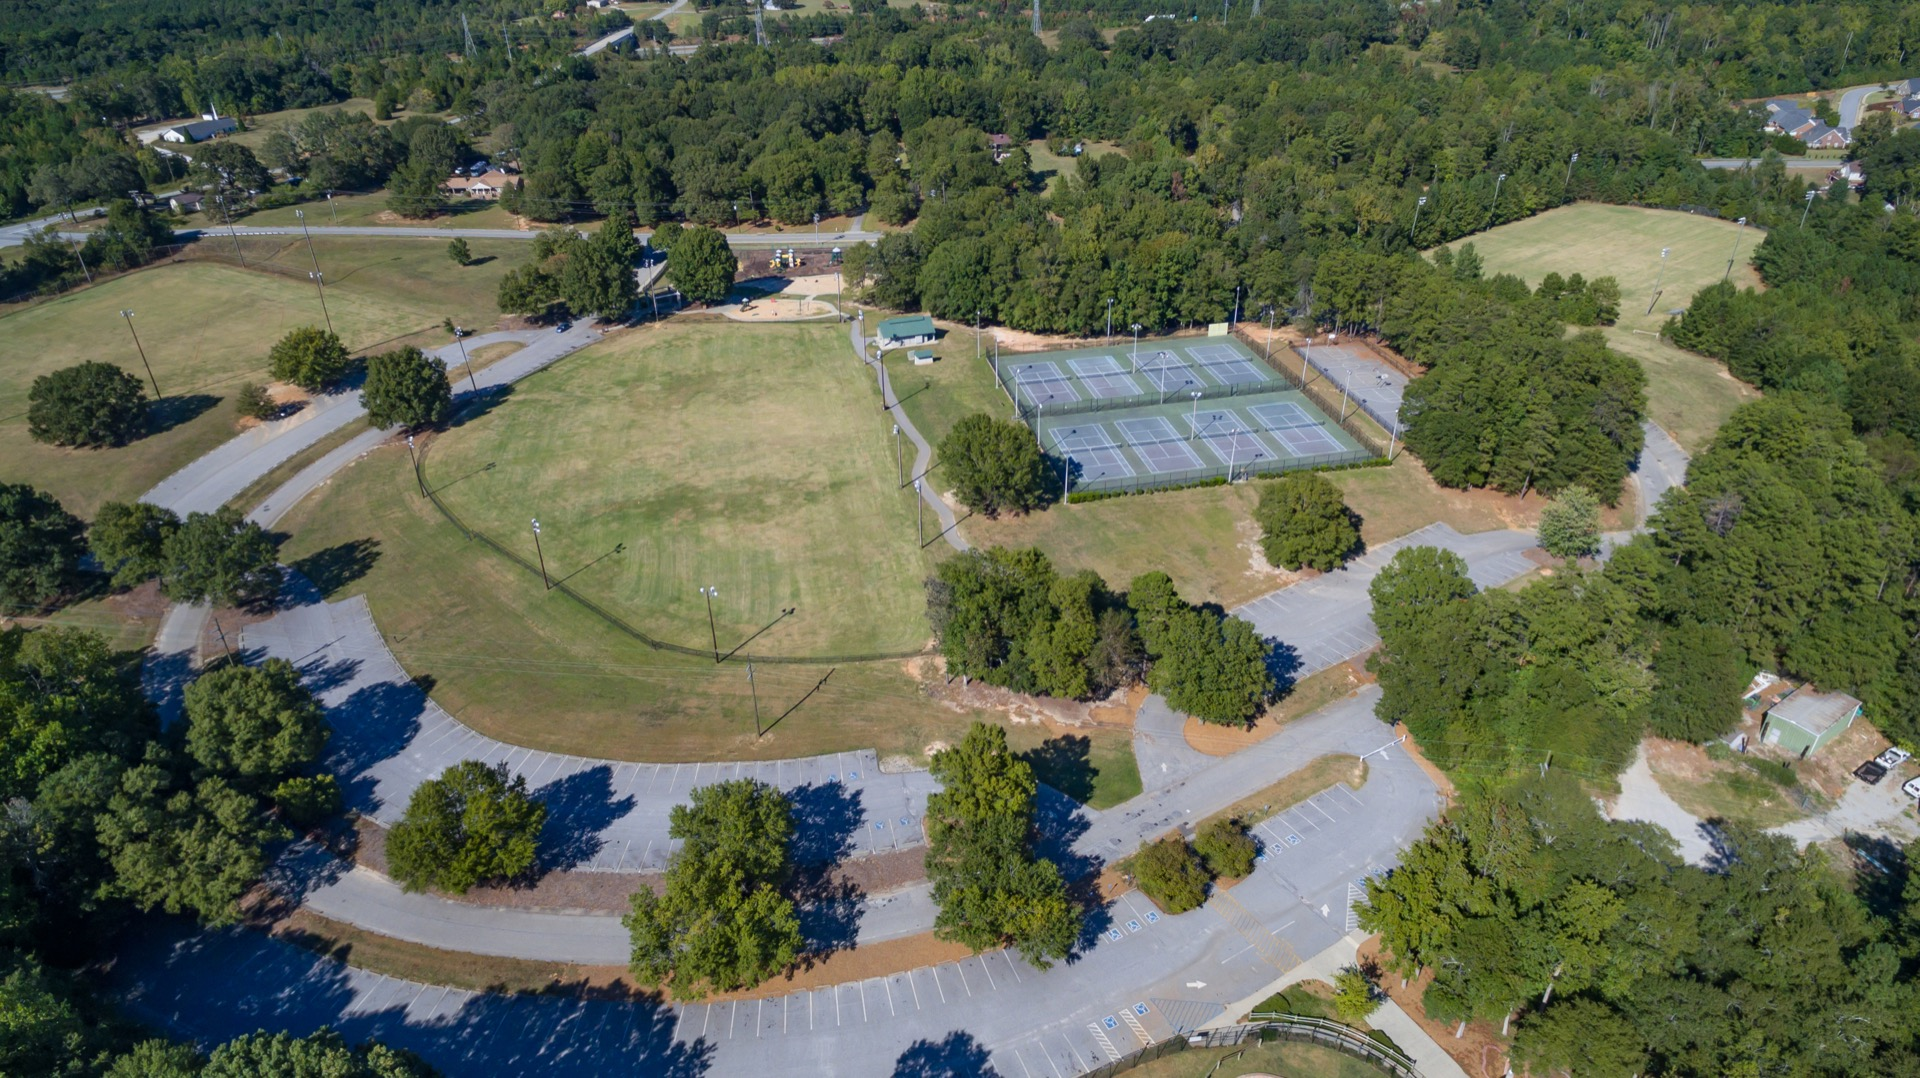 southside park aerial view